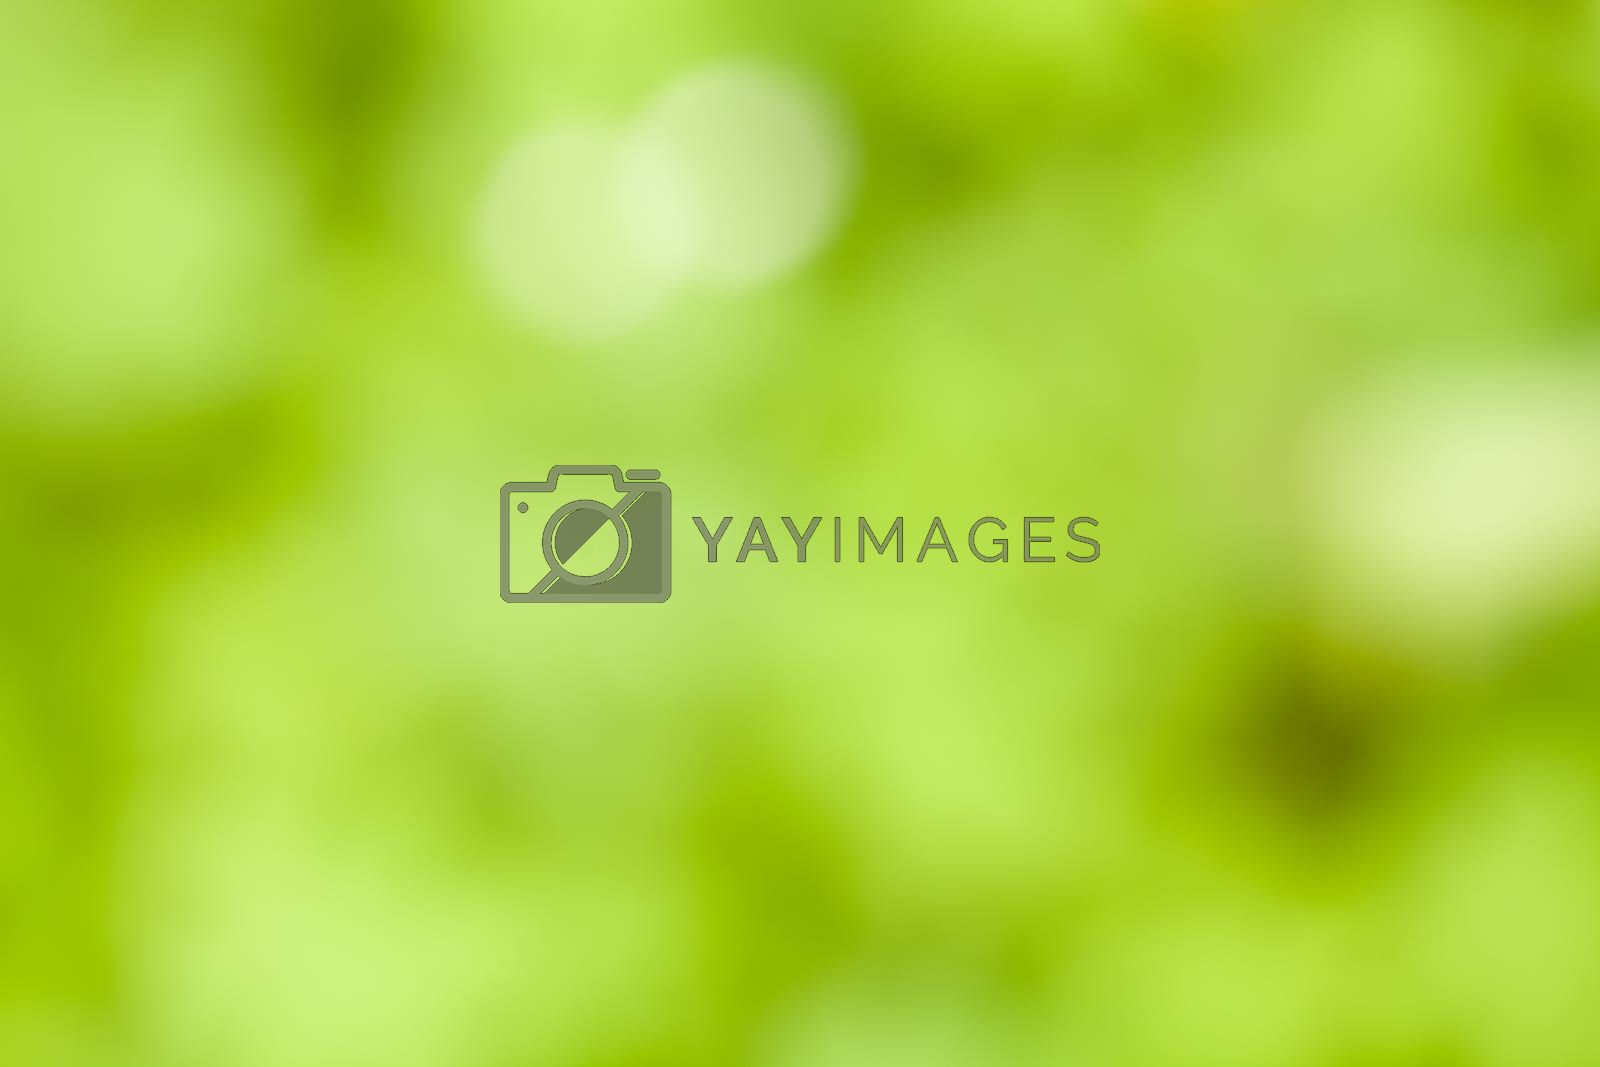 Blurry photograph of a green and yellow background